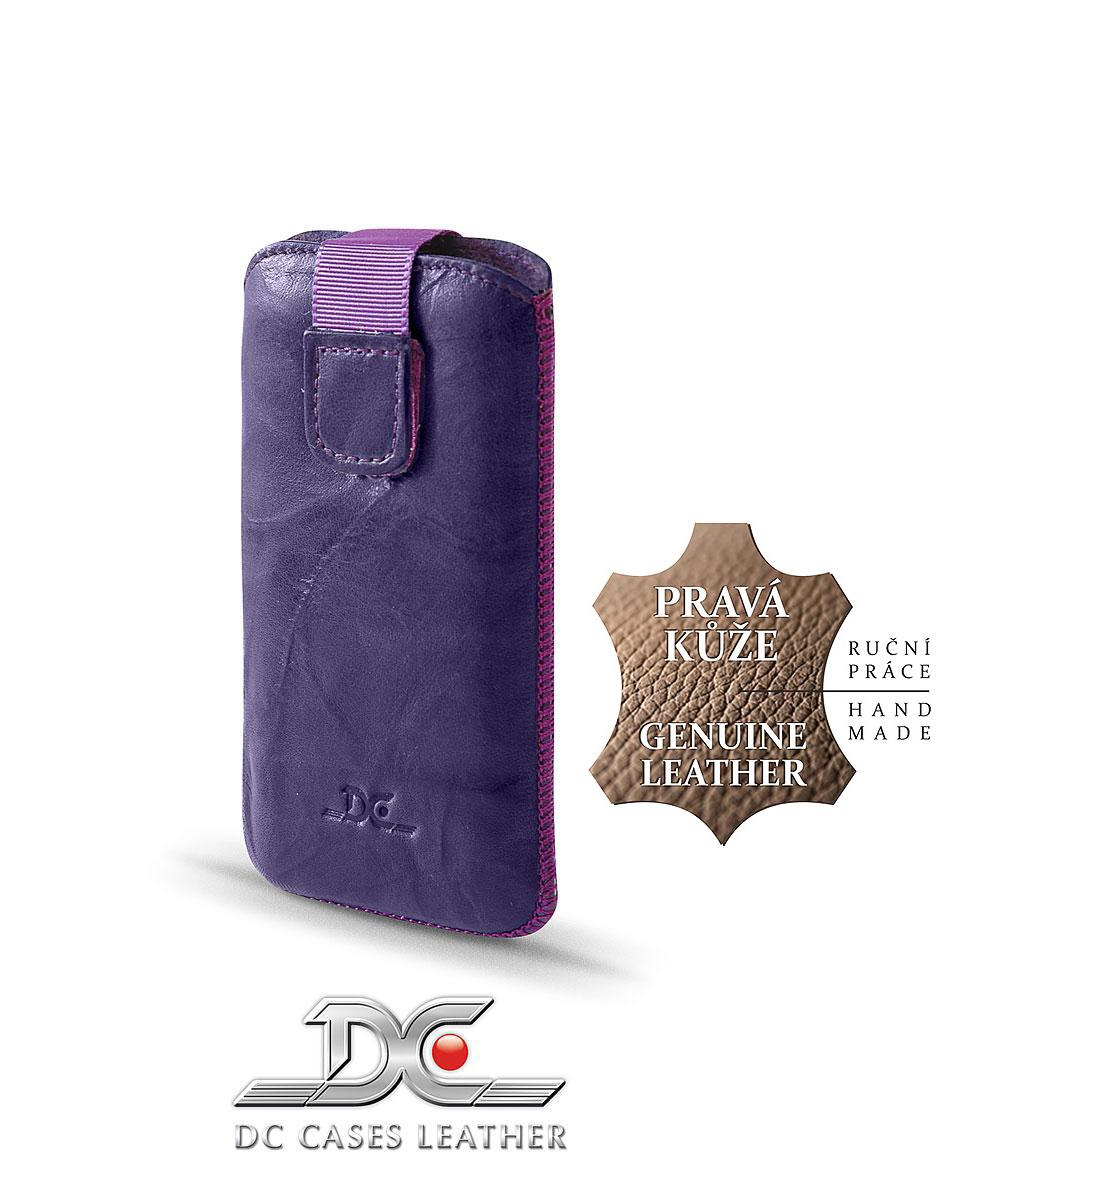 DC (TOP) POUZDRO L T28 Protect Washed FIALOVÉ (N97, IPHONE 4G, HTC DESIRE ..)